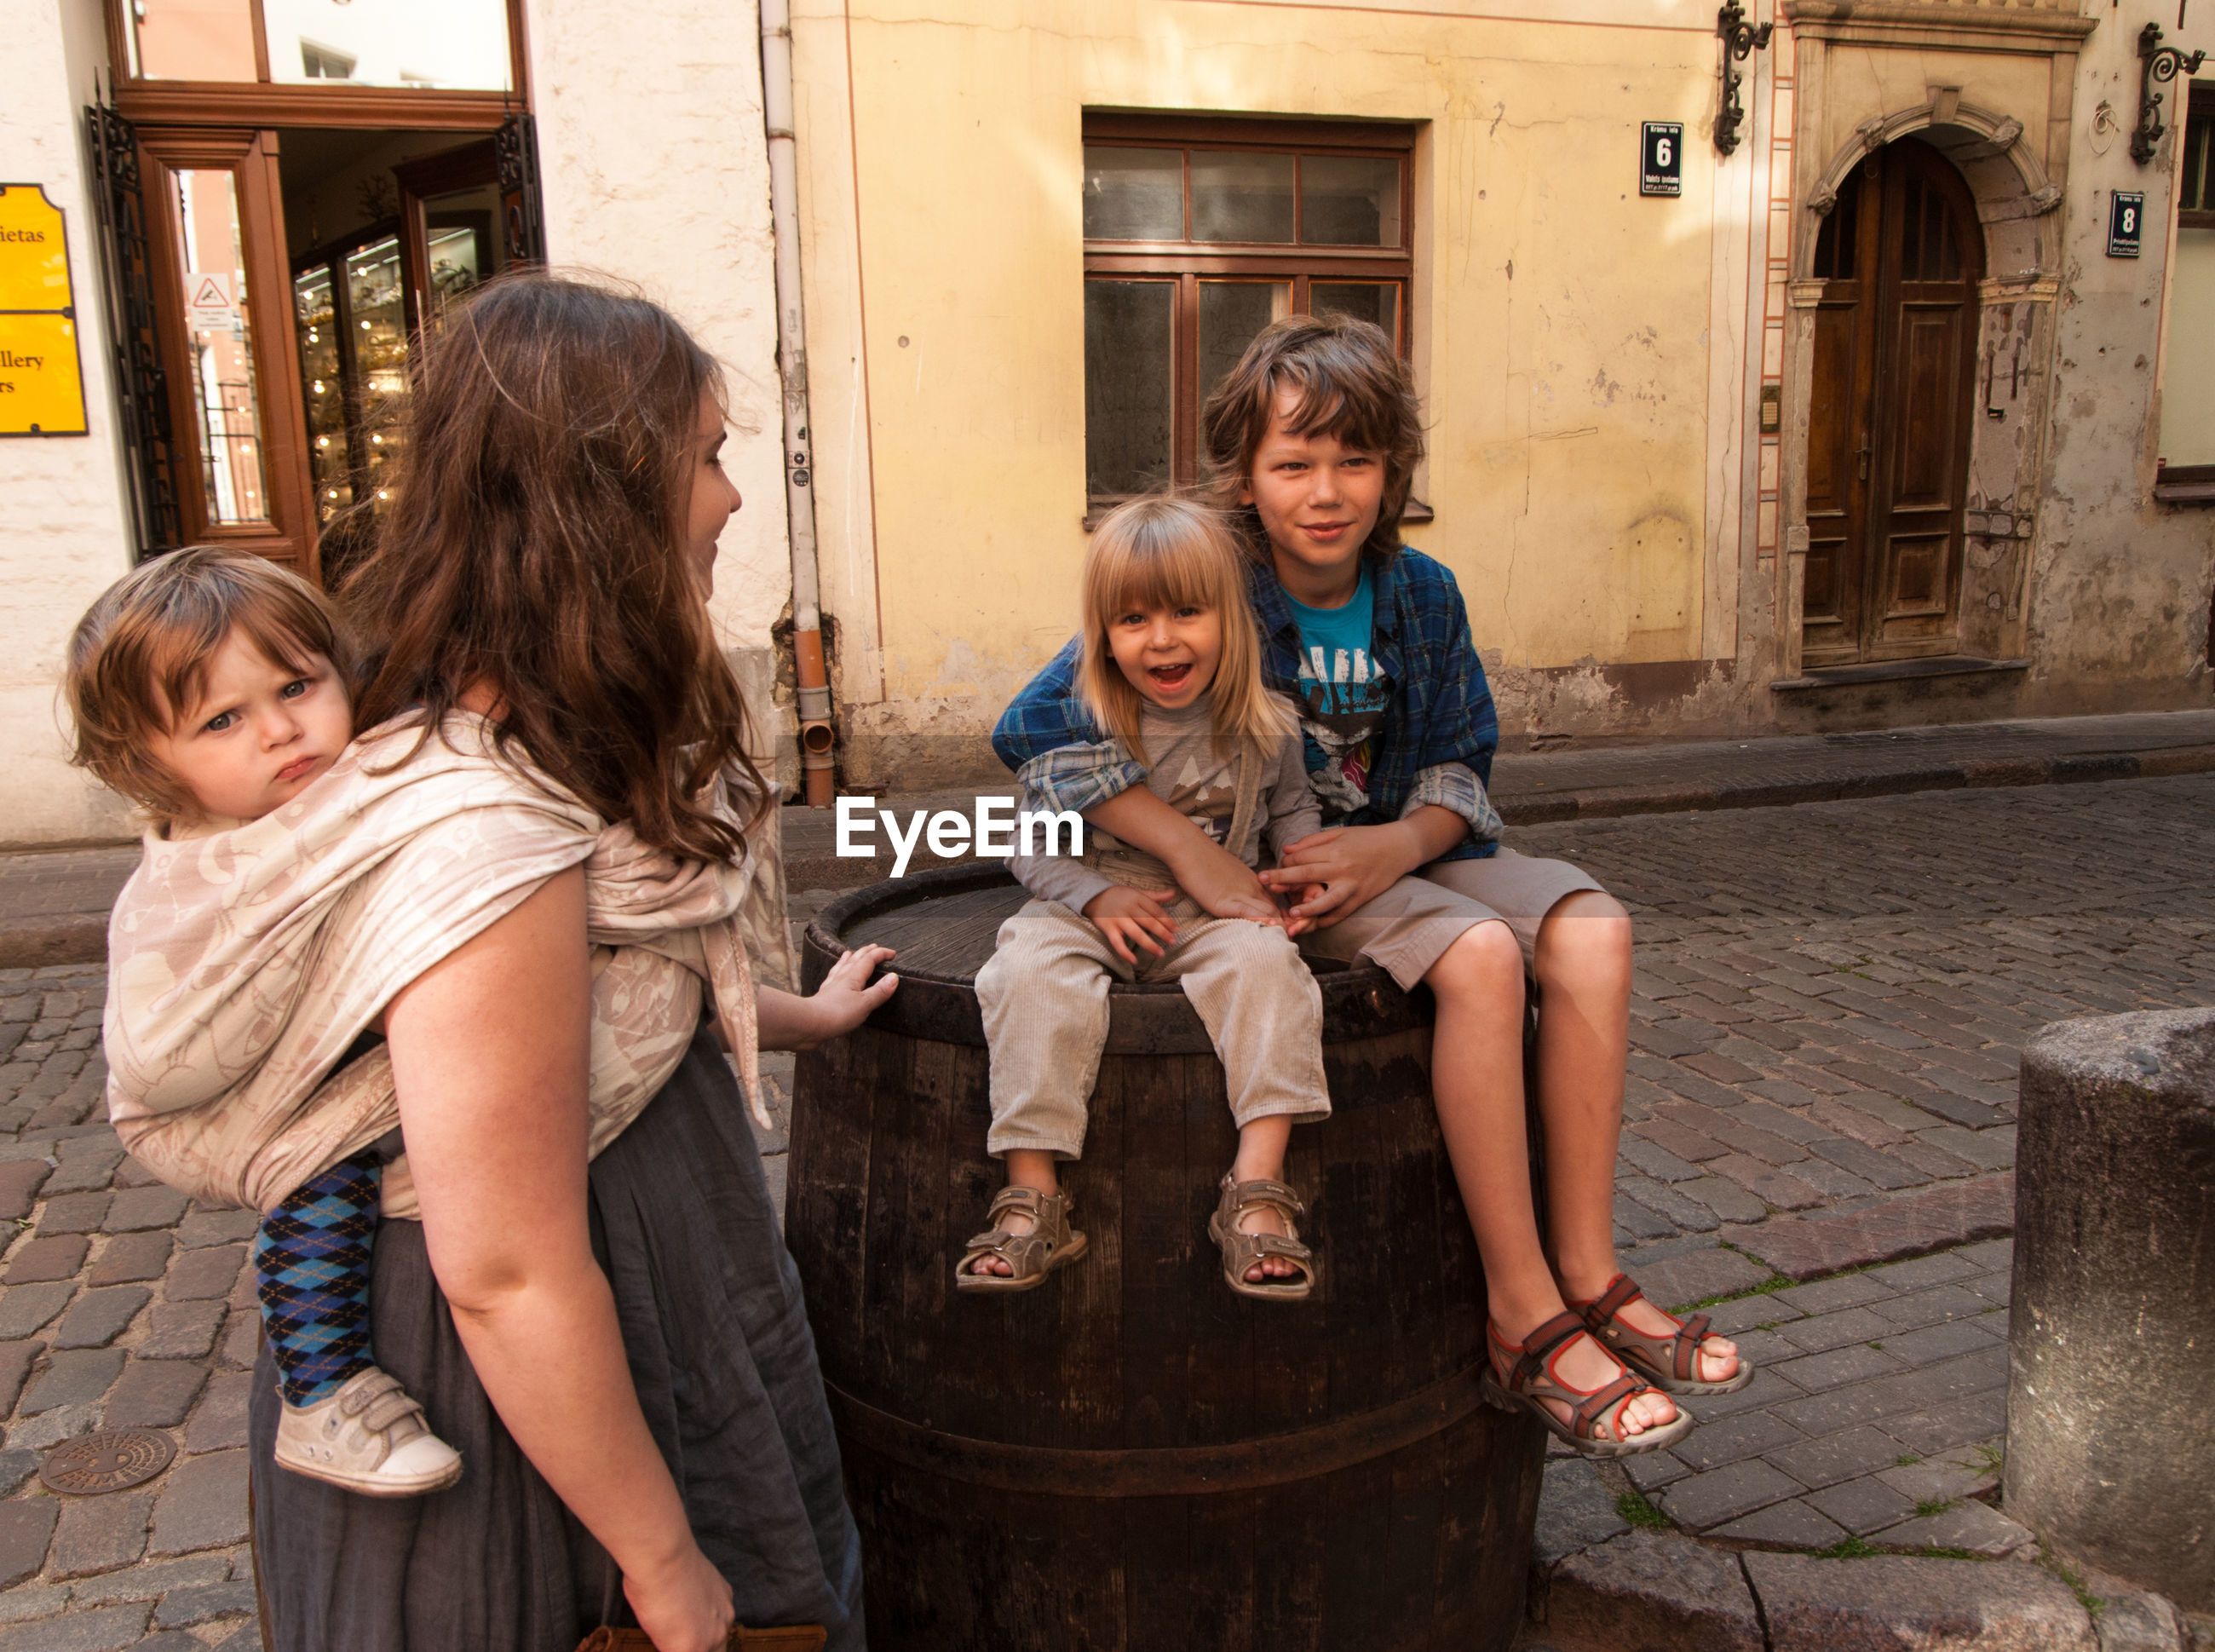 Woman with children sitting on barrel against old building in town